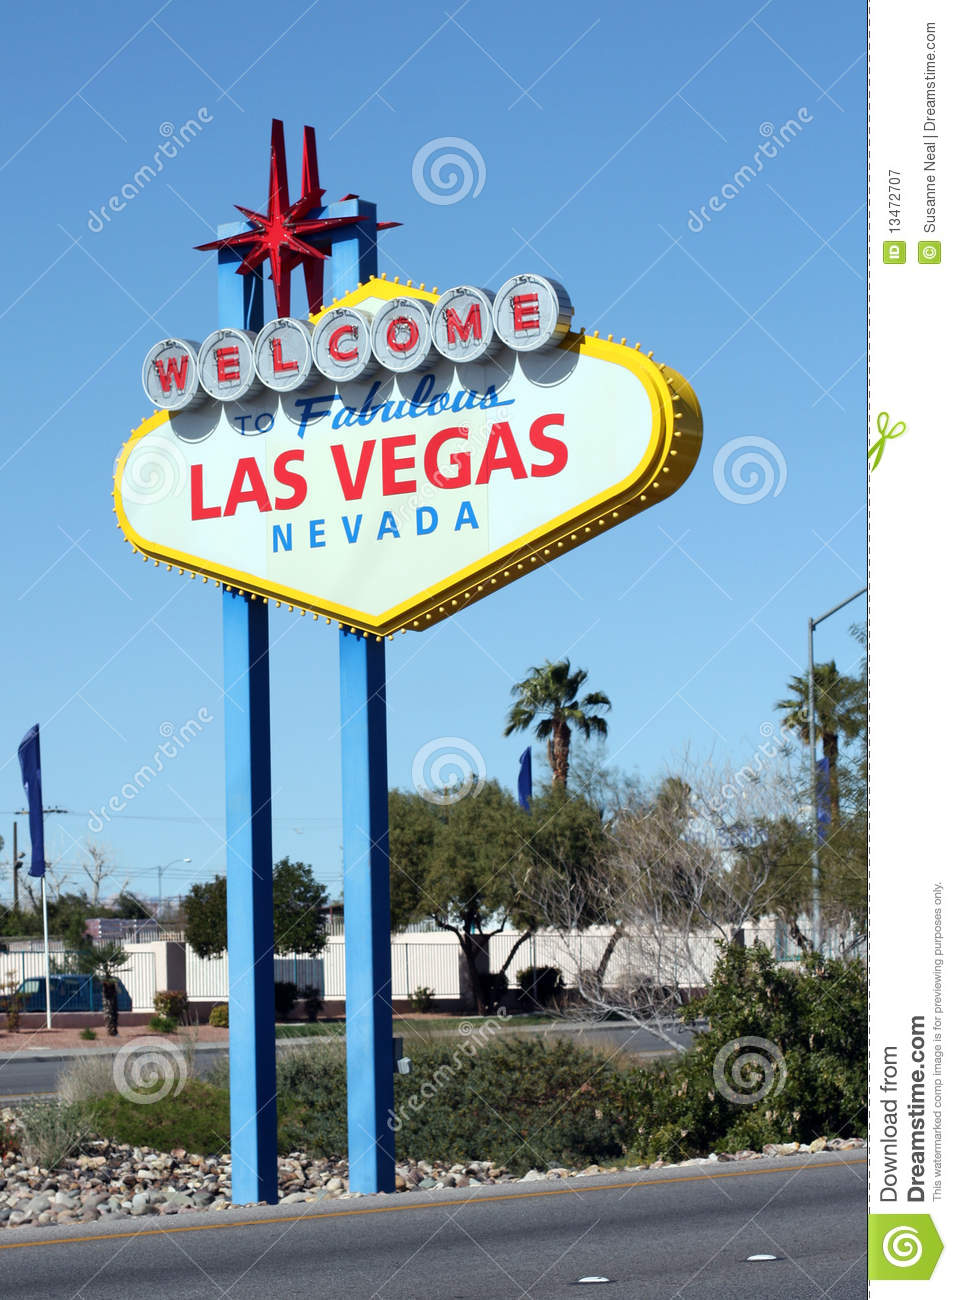 welcome to fabulous las vegas sign royalty free stock photography image 13472707. Black Bedroom Furniture Sets. Home Design Ideas